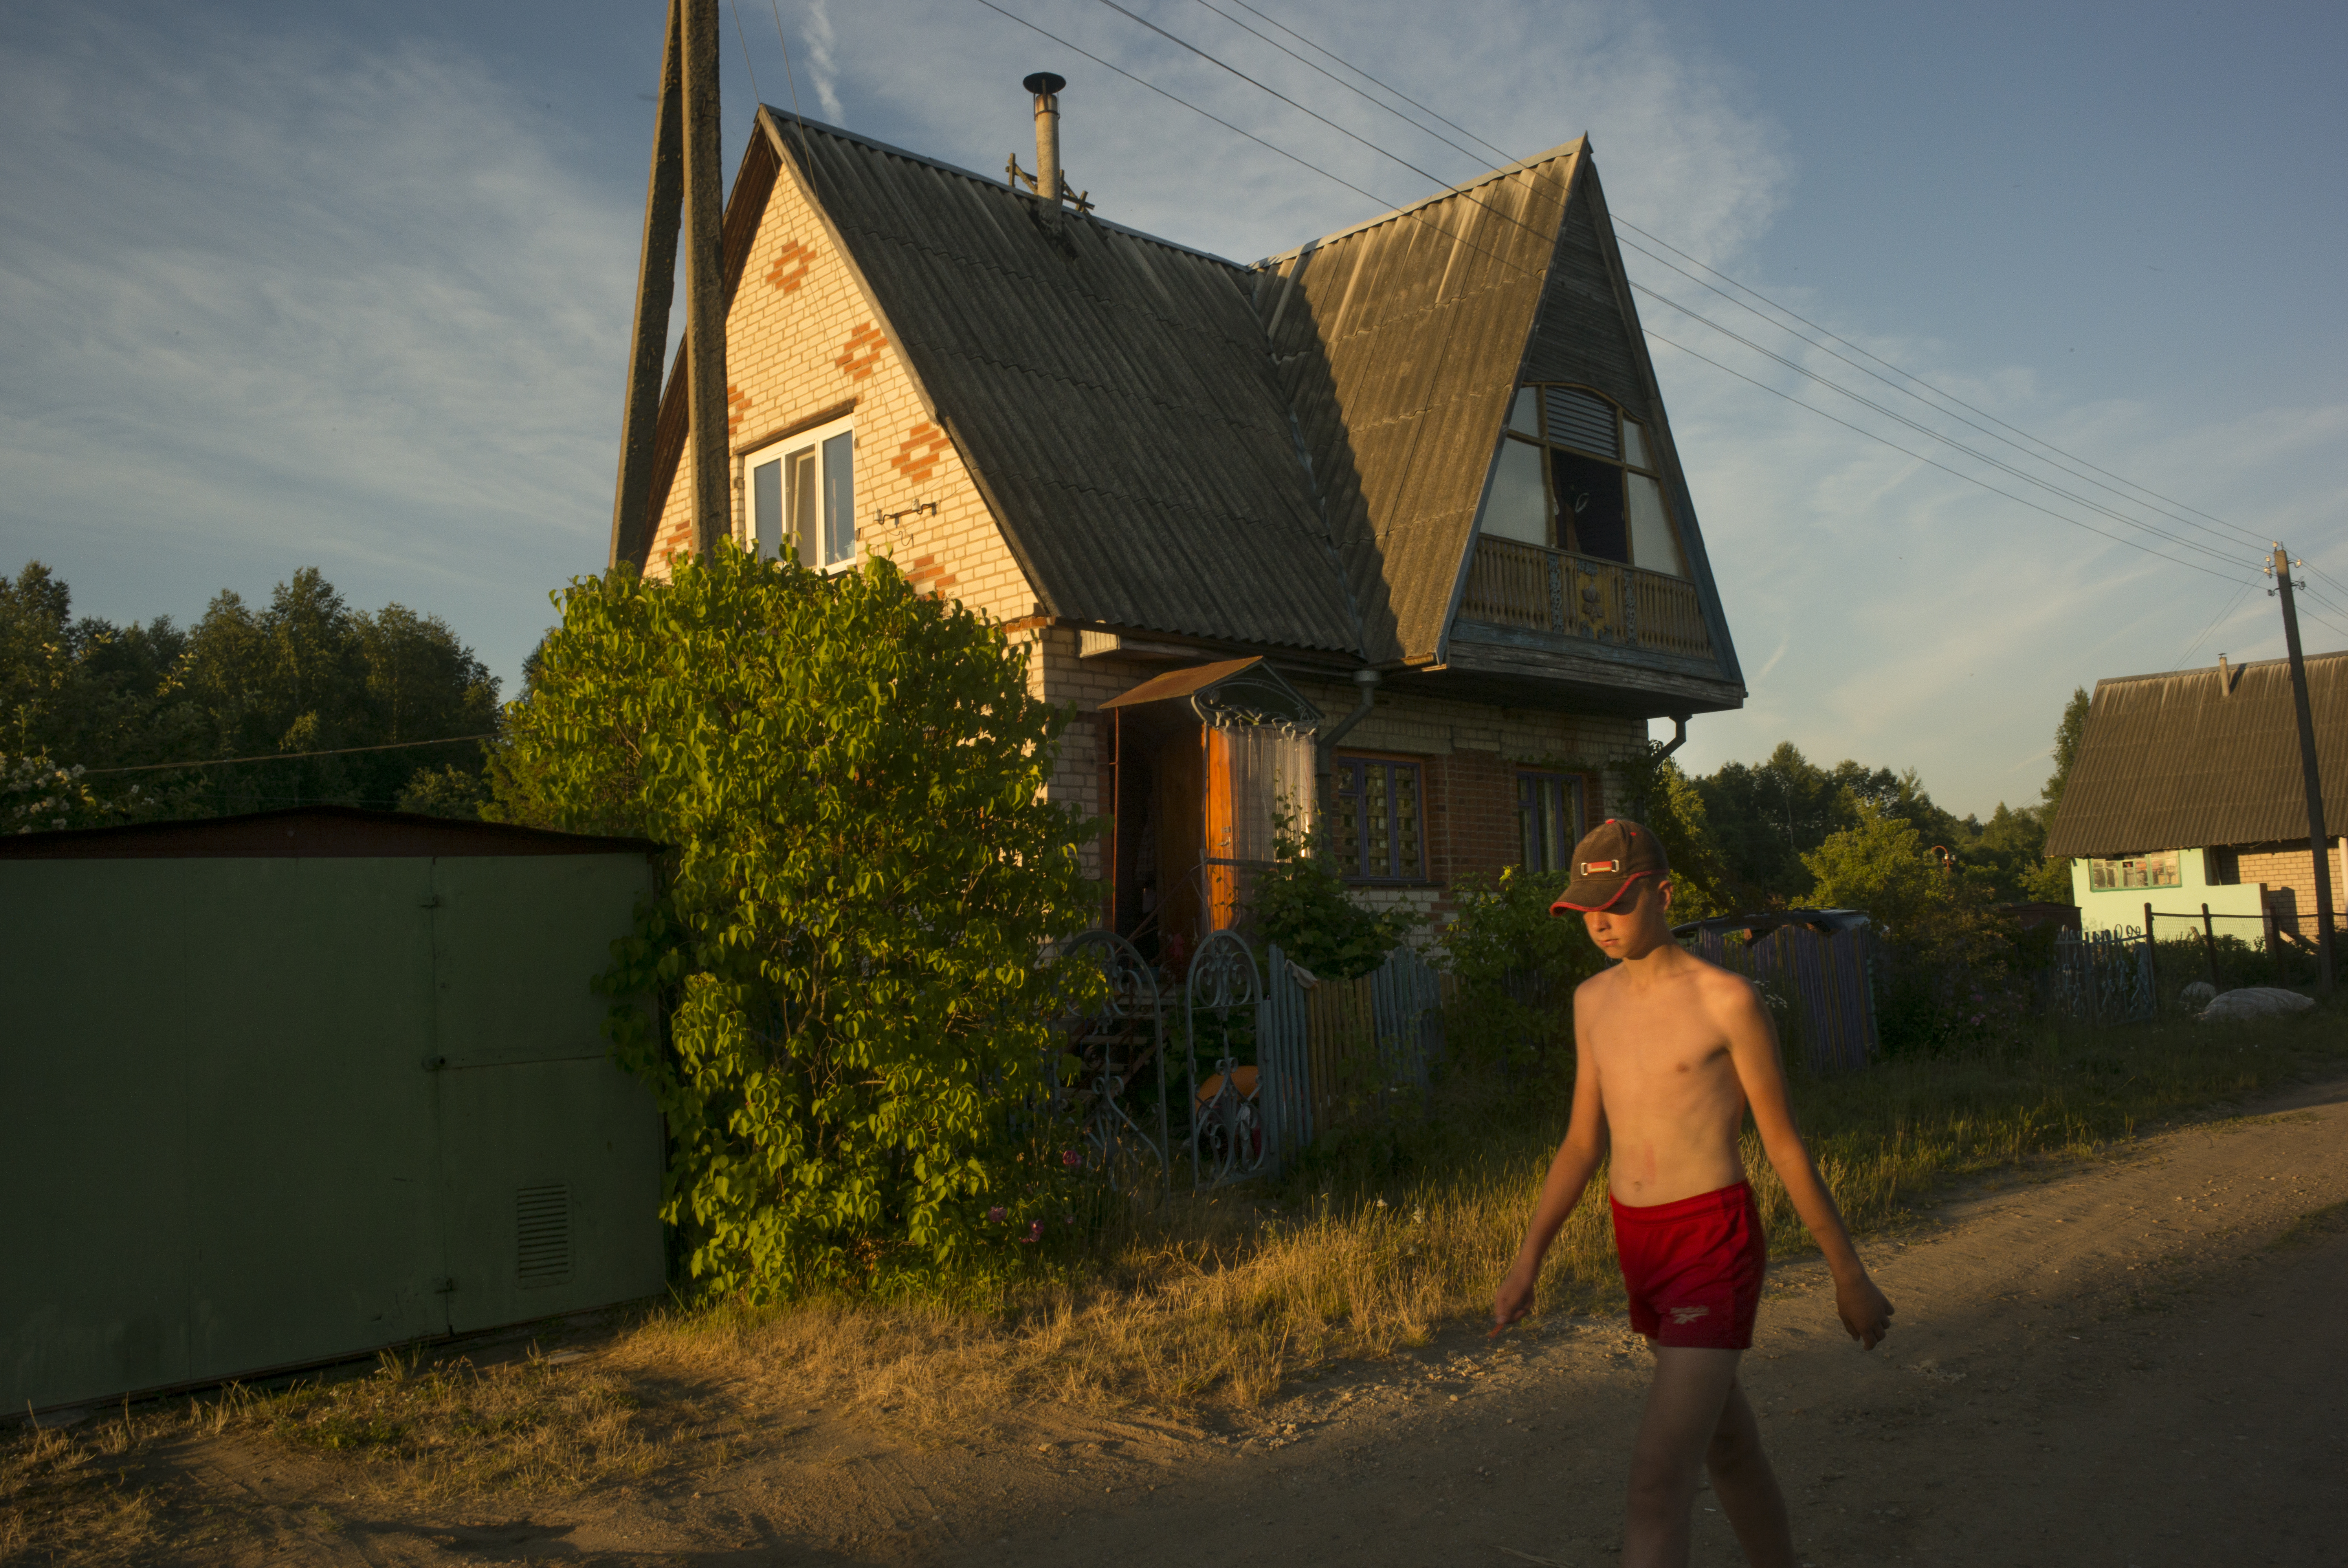 At the dacha, a neighbor put a tall fence that obstructs my window. It&#39